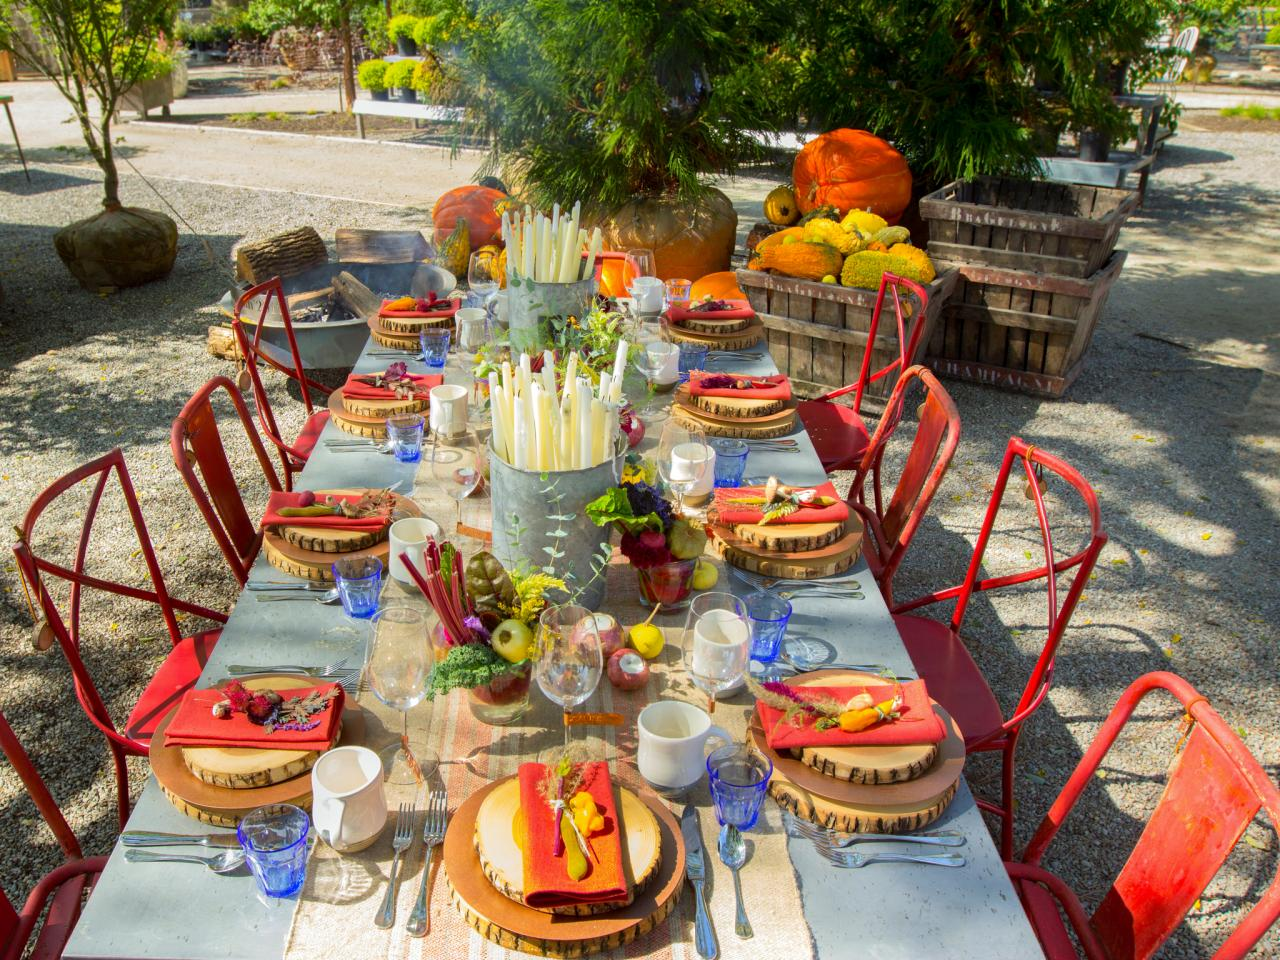 Thanksgiving decoration outdoor - Stunning Outdoor Thanksgiving Decoration Idea With Dining Set And Red Chairs And White Table With Centerpiece